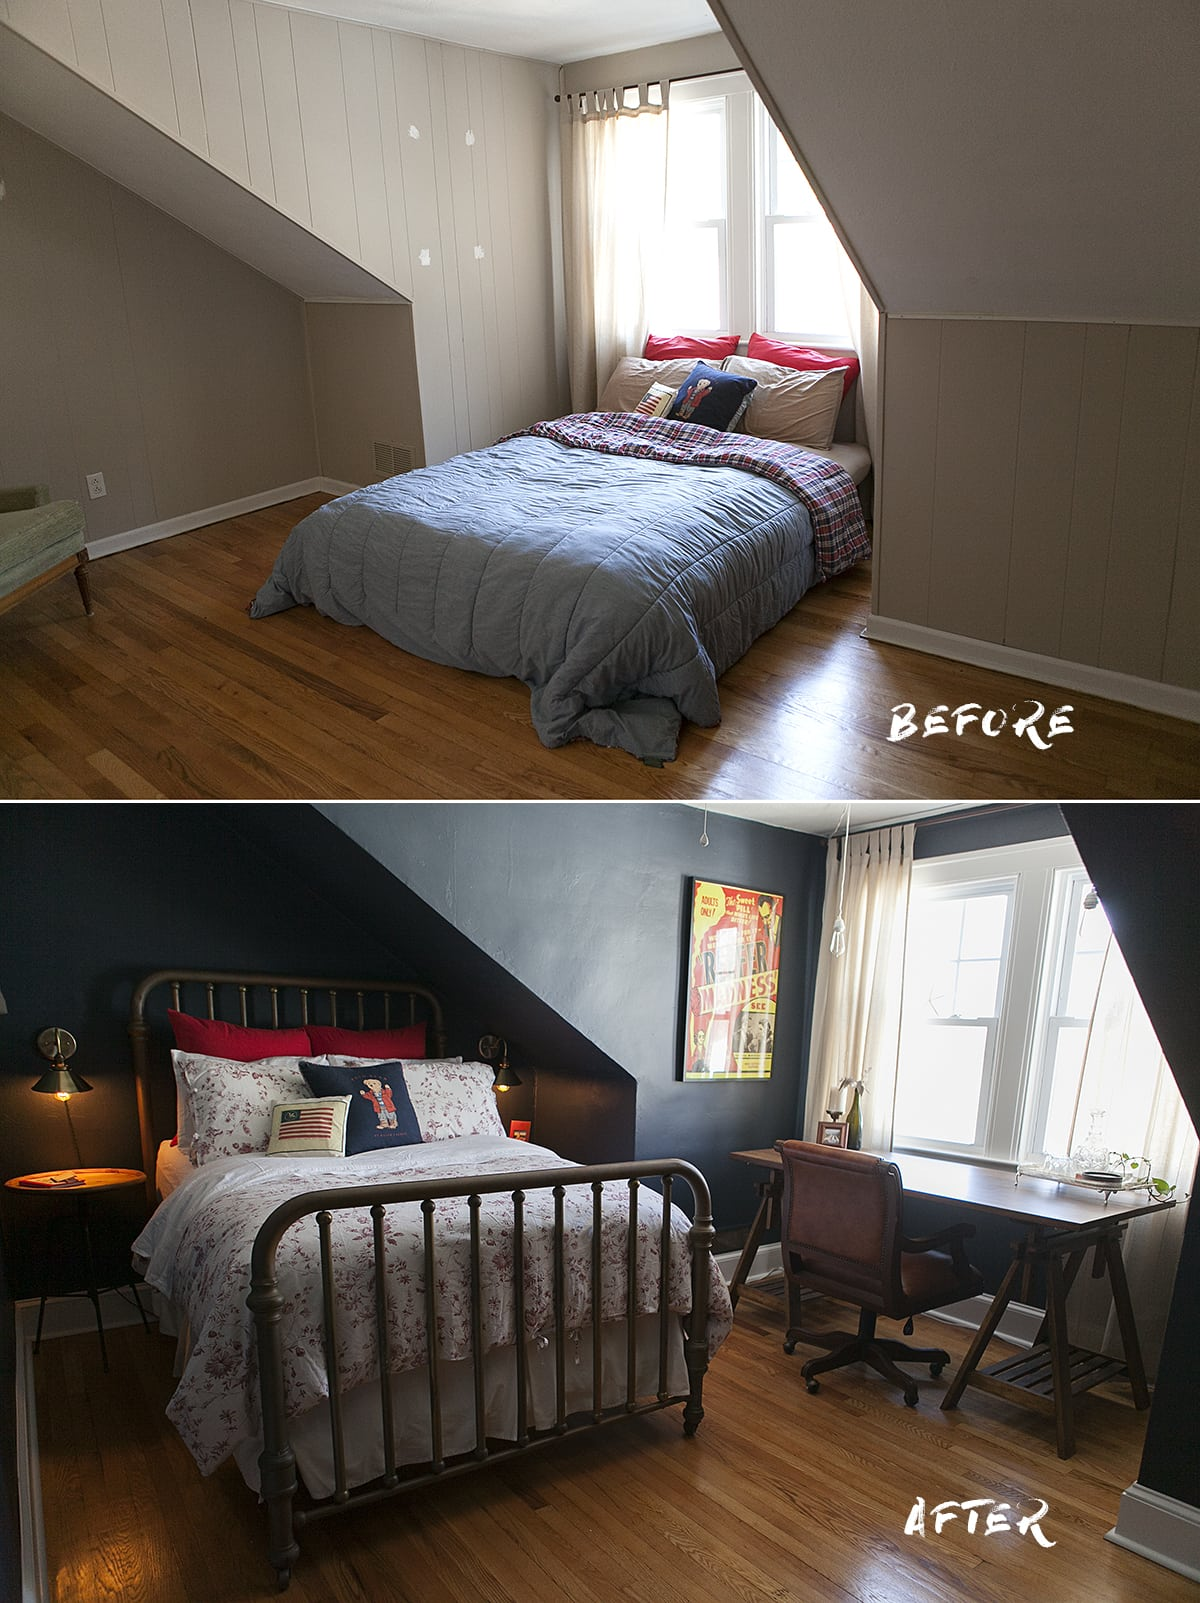 ... Our Indigo Bedroom Renovation. Finally, Just Last January, A Little  Blood, Sweat, Tears And A Lotta Of Vision Brought Together My Biggest And  Most ...